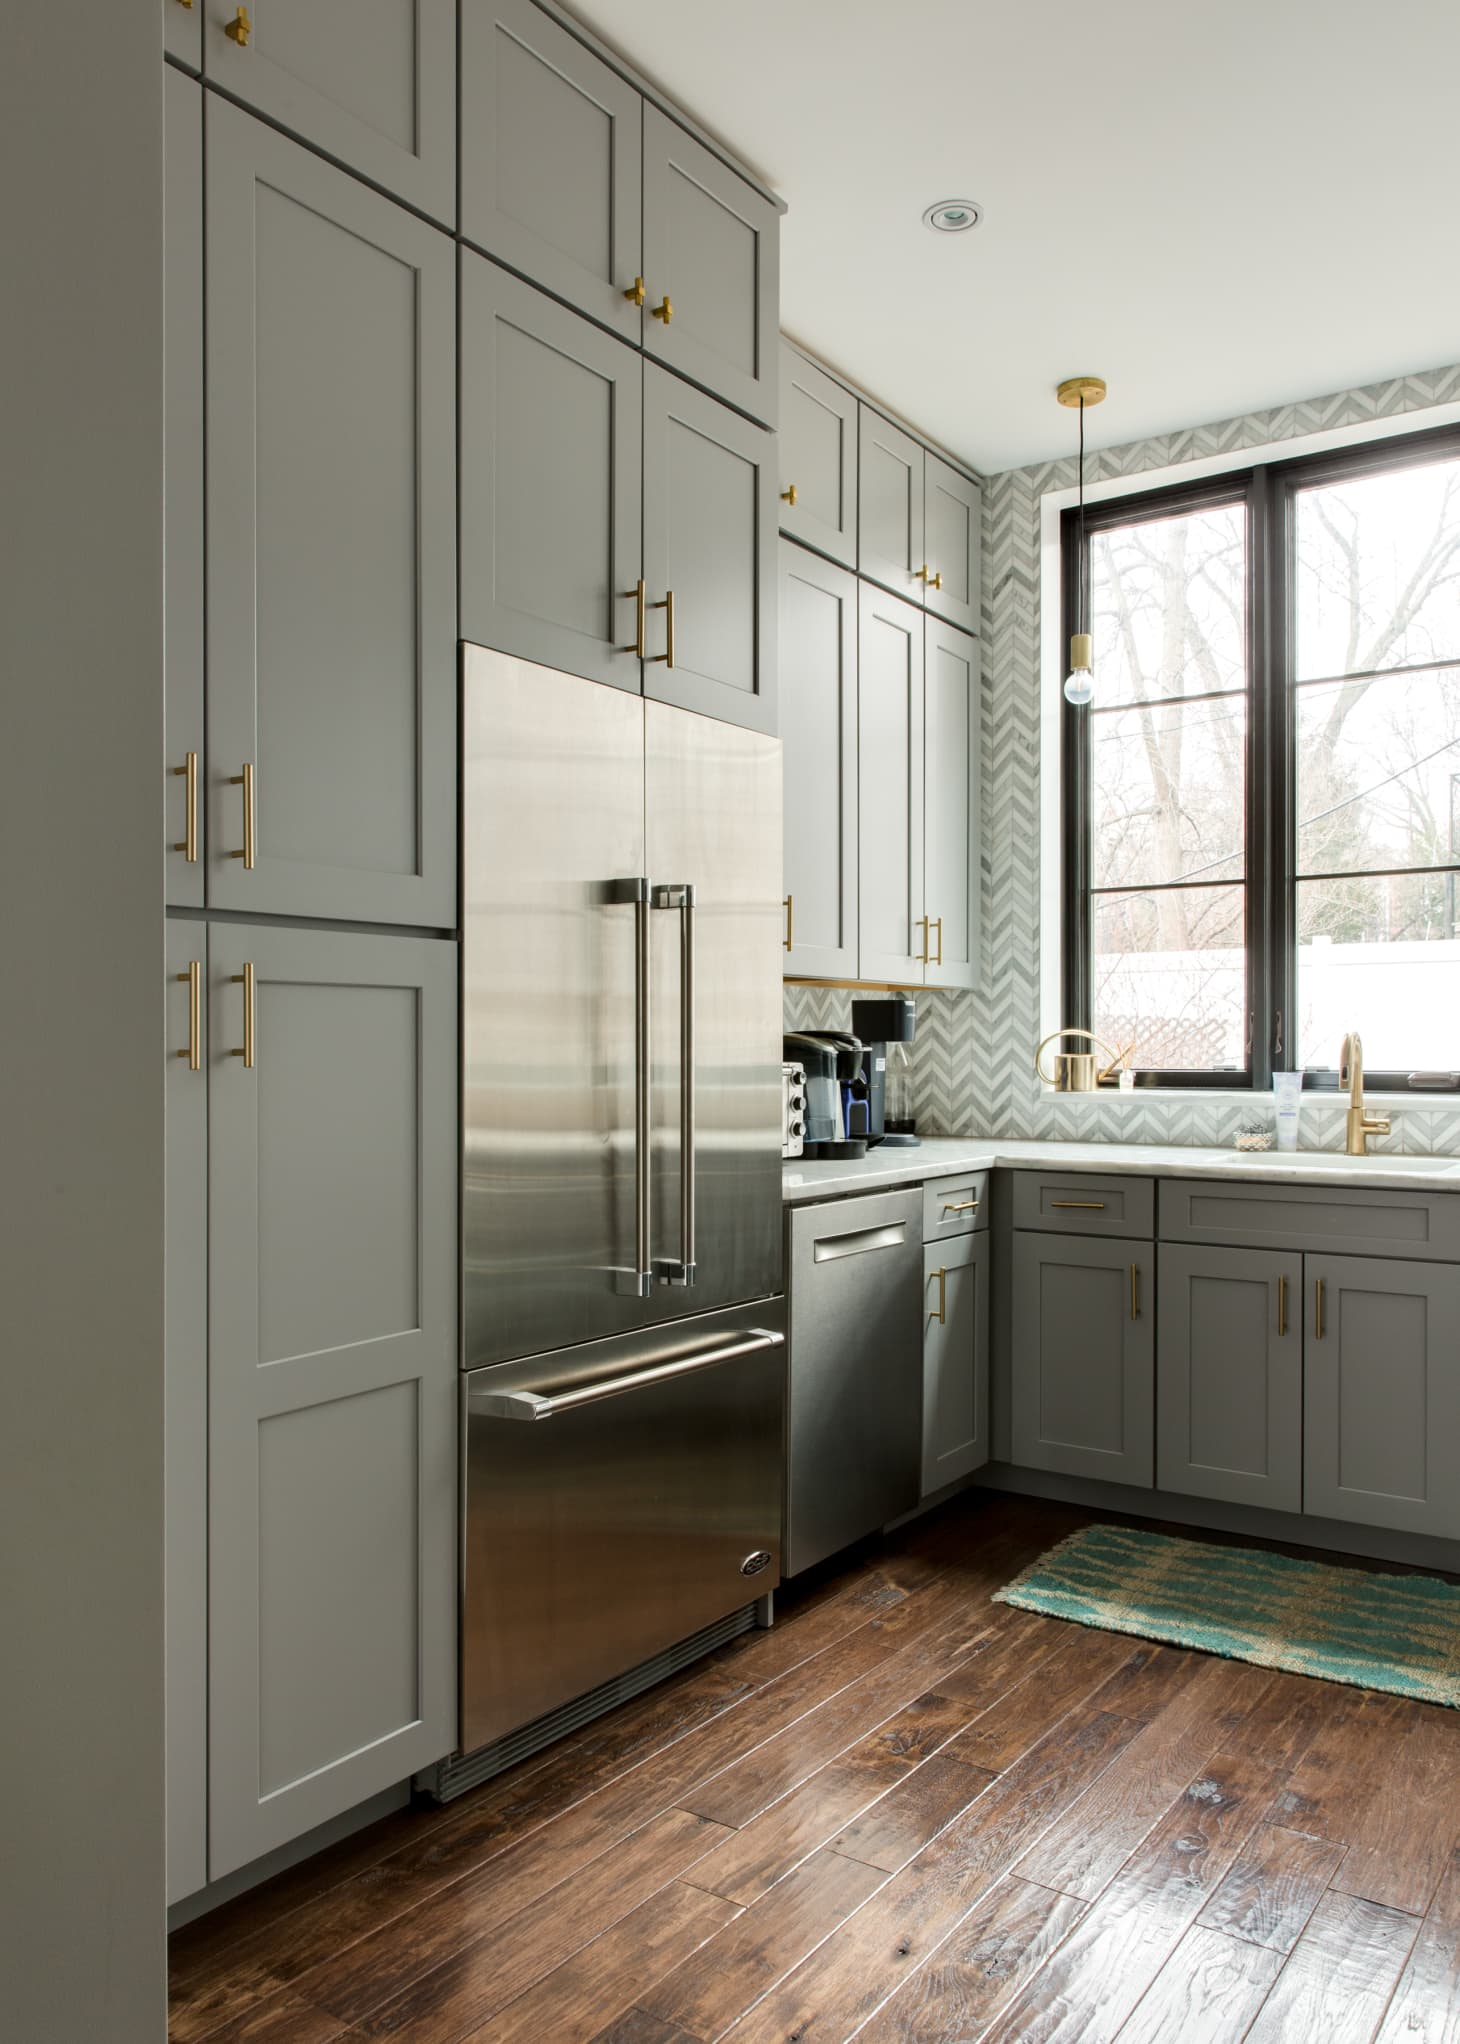 Kitchen Sink - Undermount Pros, Cons   Apartment Therapy